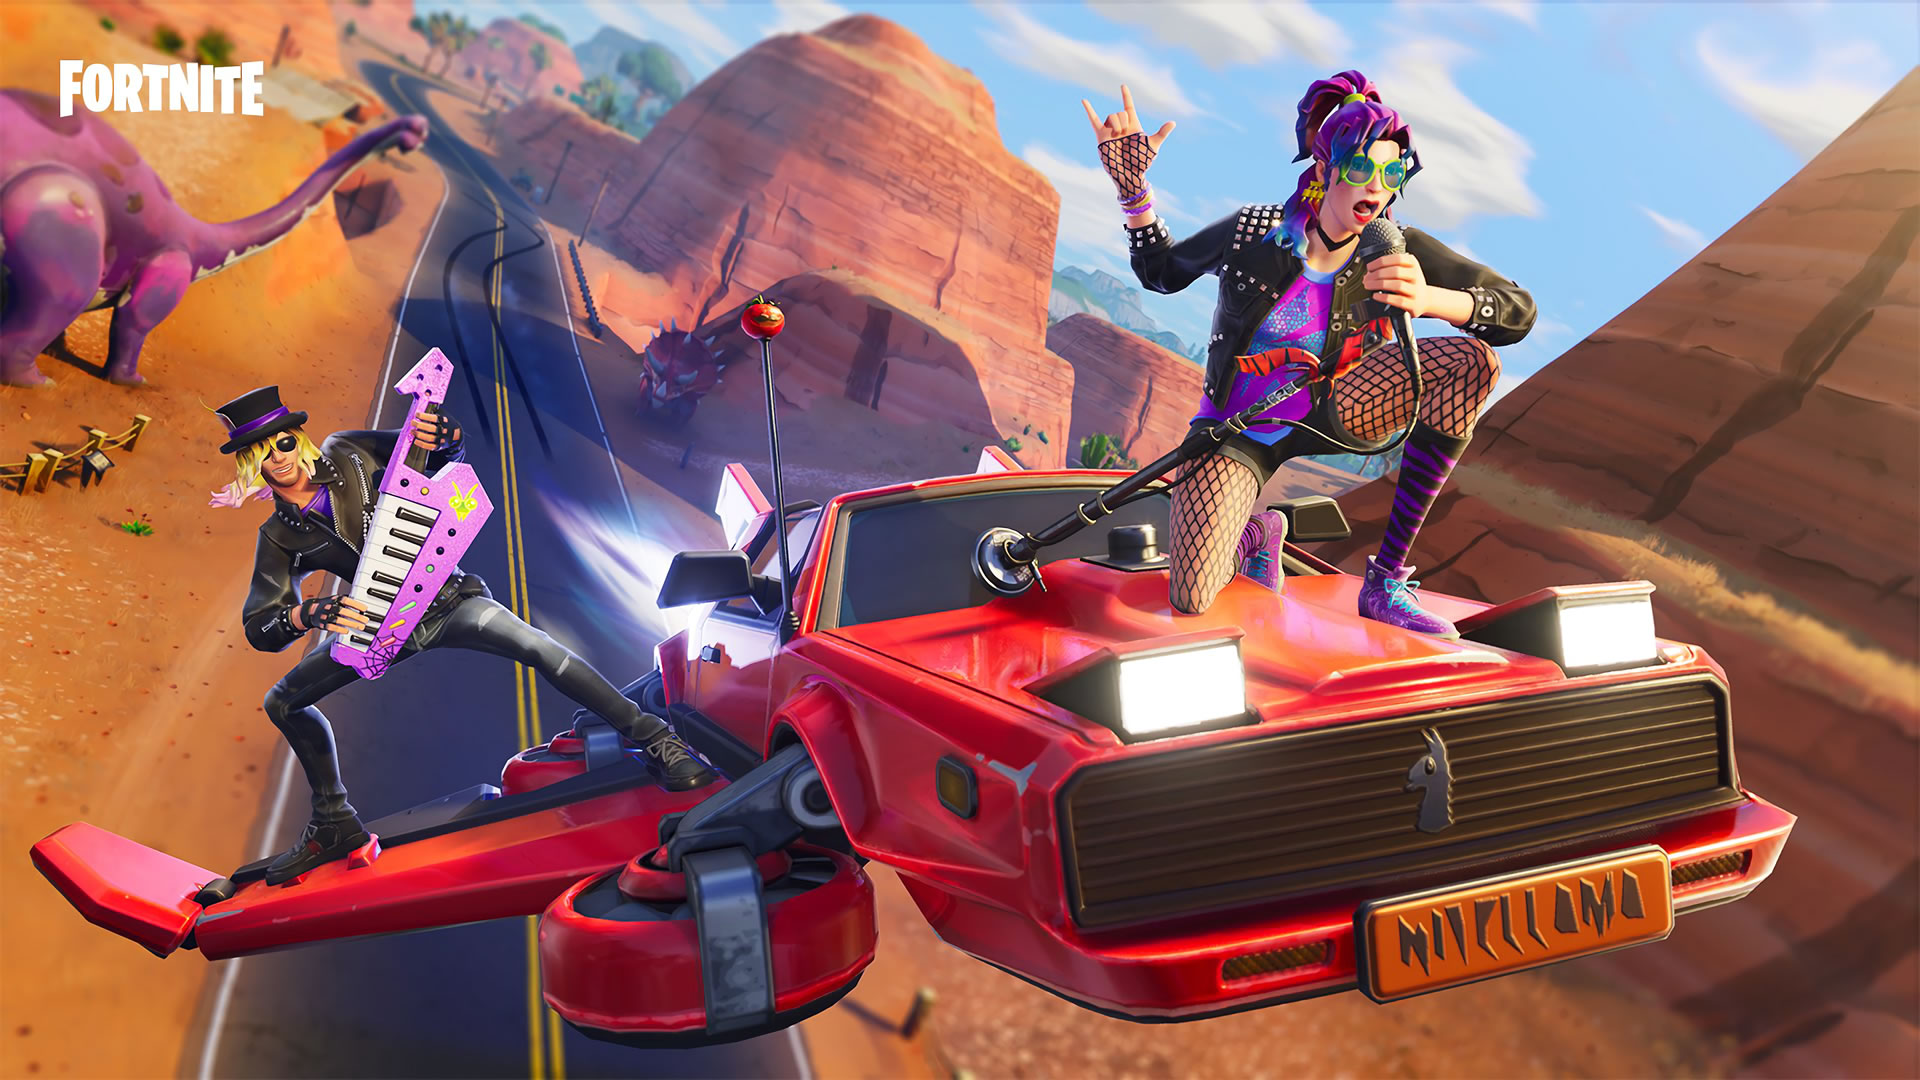 download wallpaper: Fortnite – Stage Slayer & Synth Star wallpaper